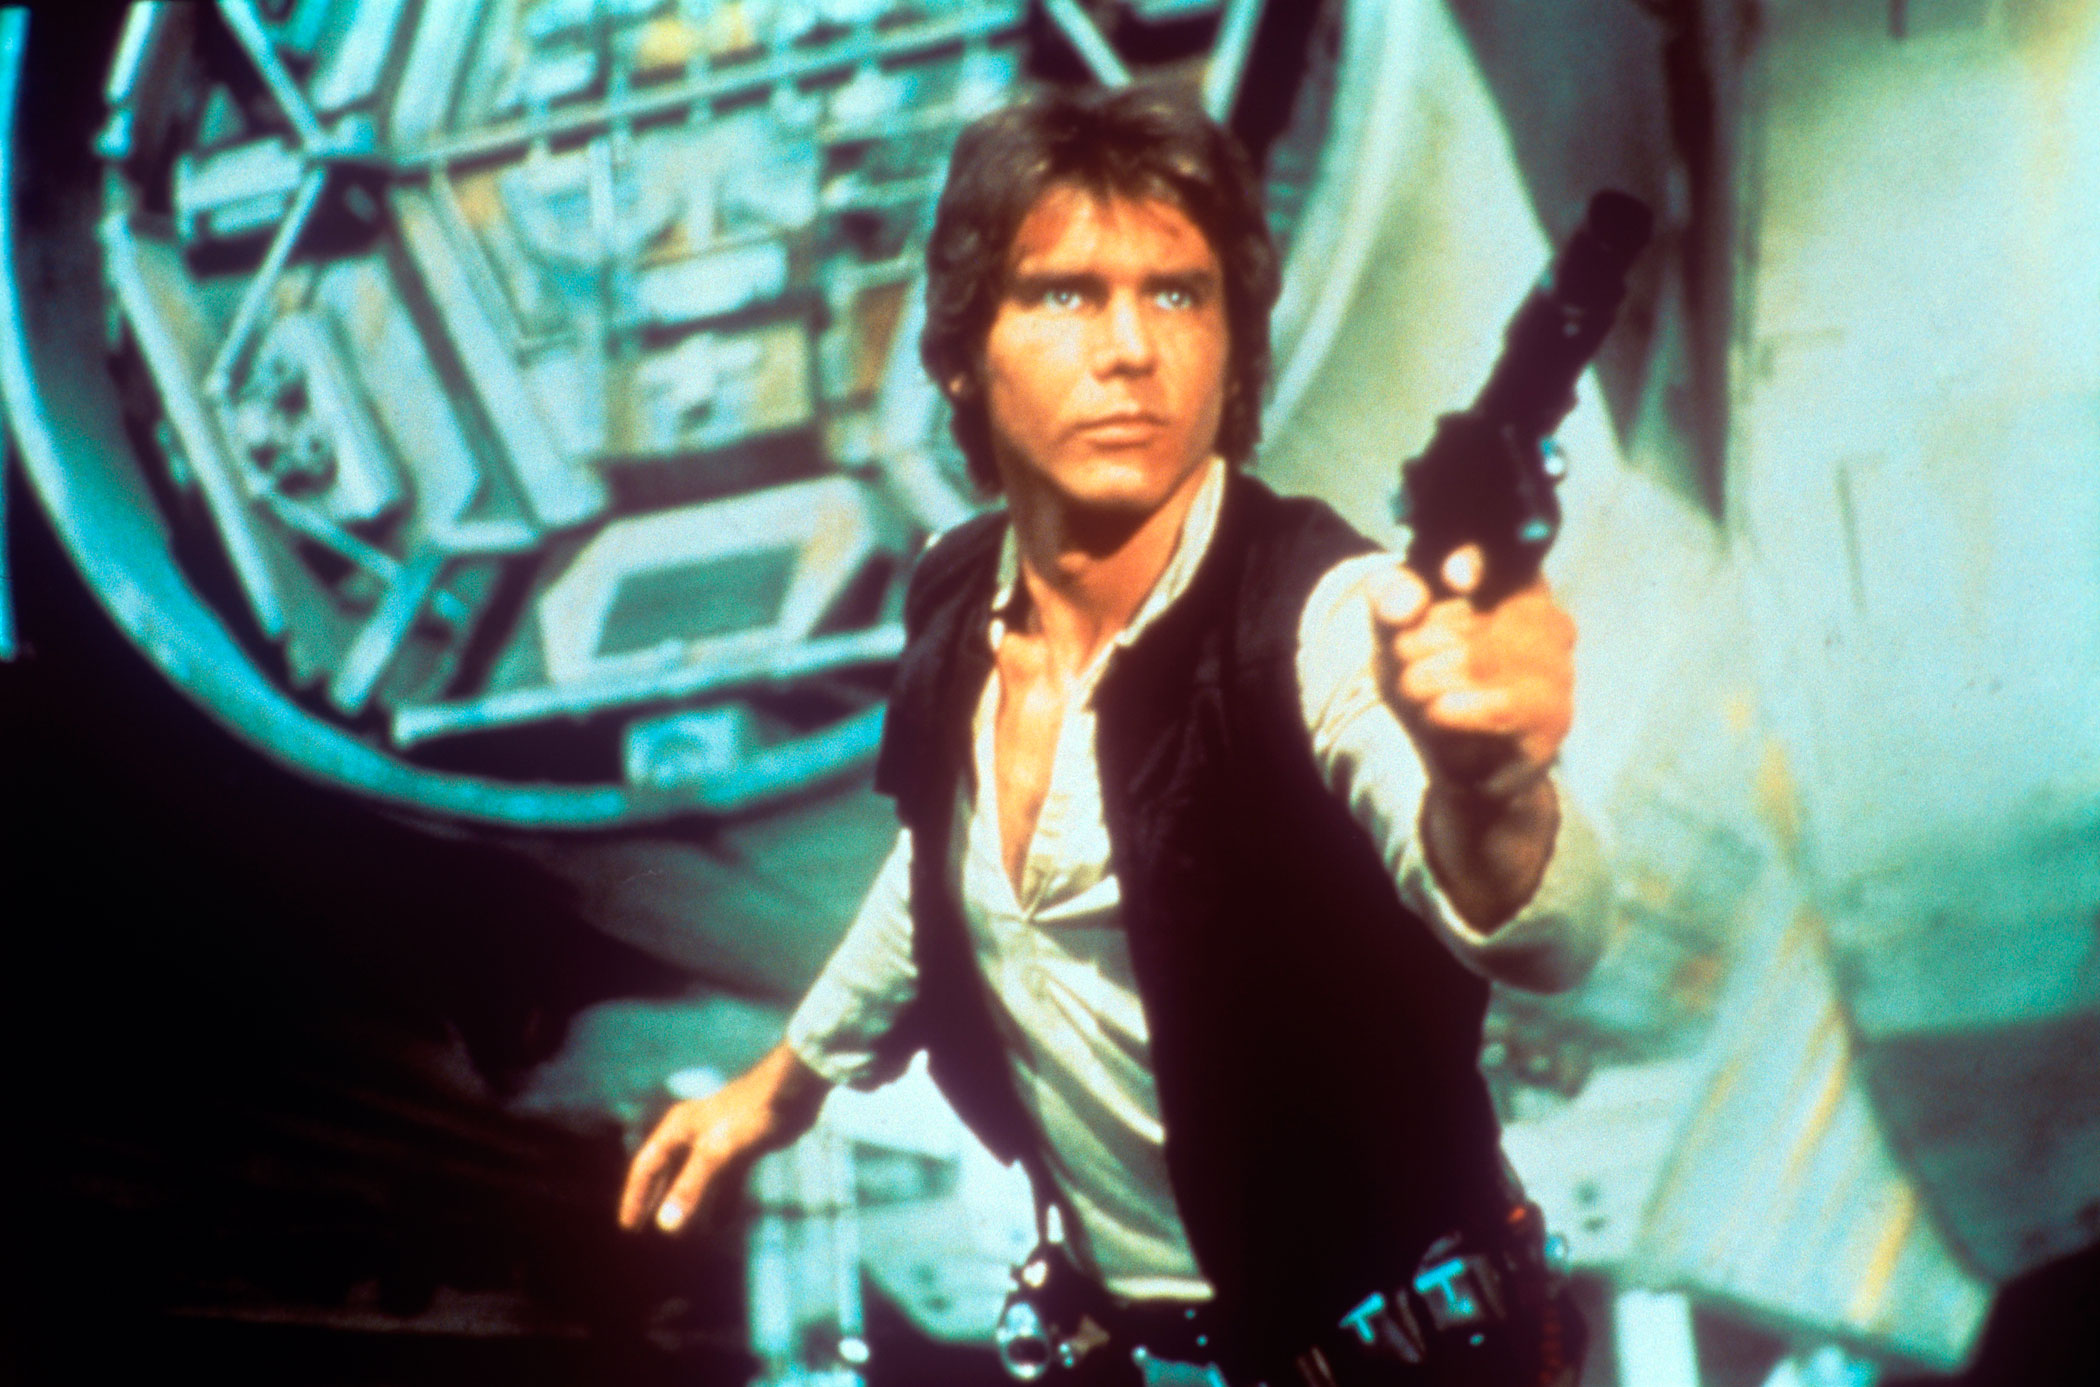 Harrison Ford as Han Solo in Star Wars, 1977.